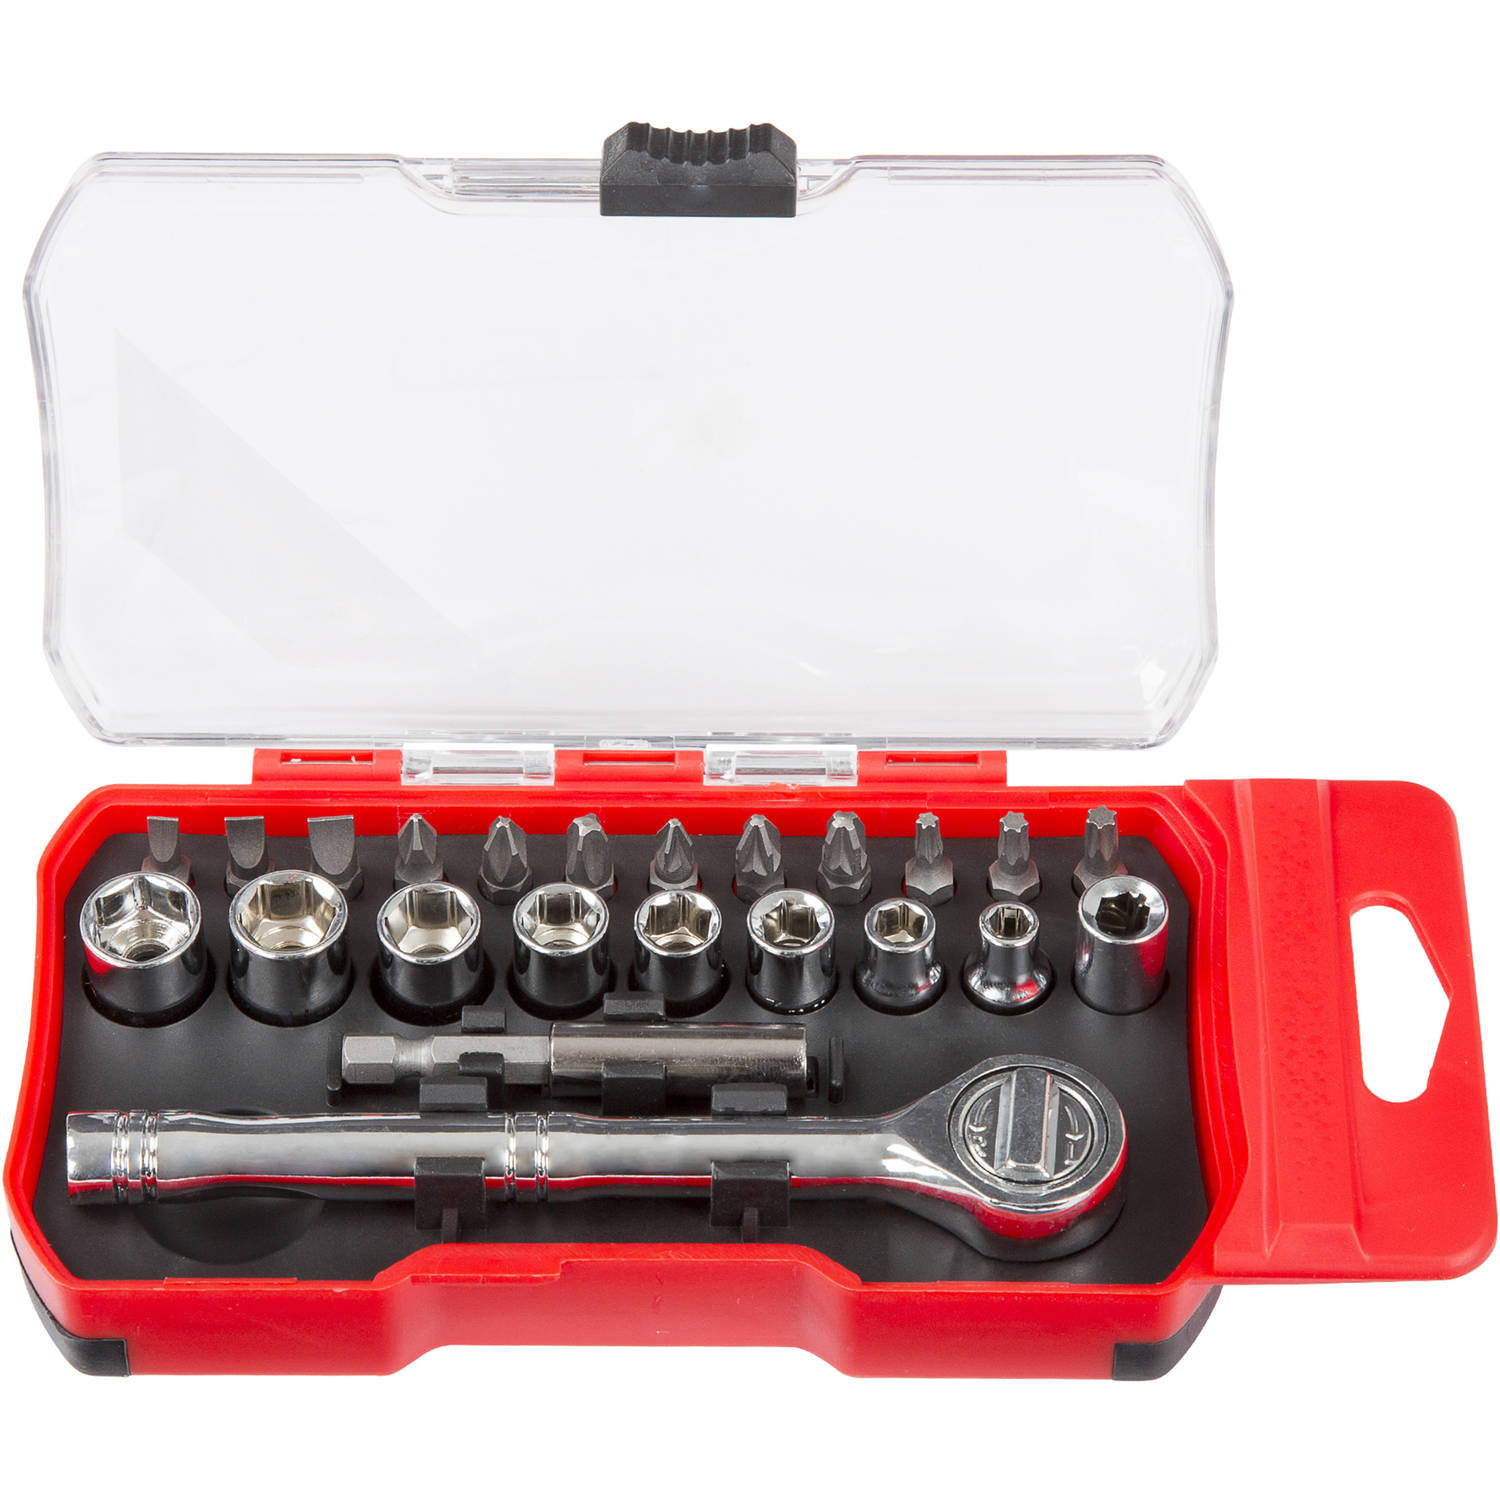 Stalwart Stubby Ratchet, Metric Socket, and Bit Set, 26-48 Piece